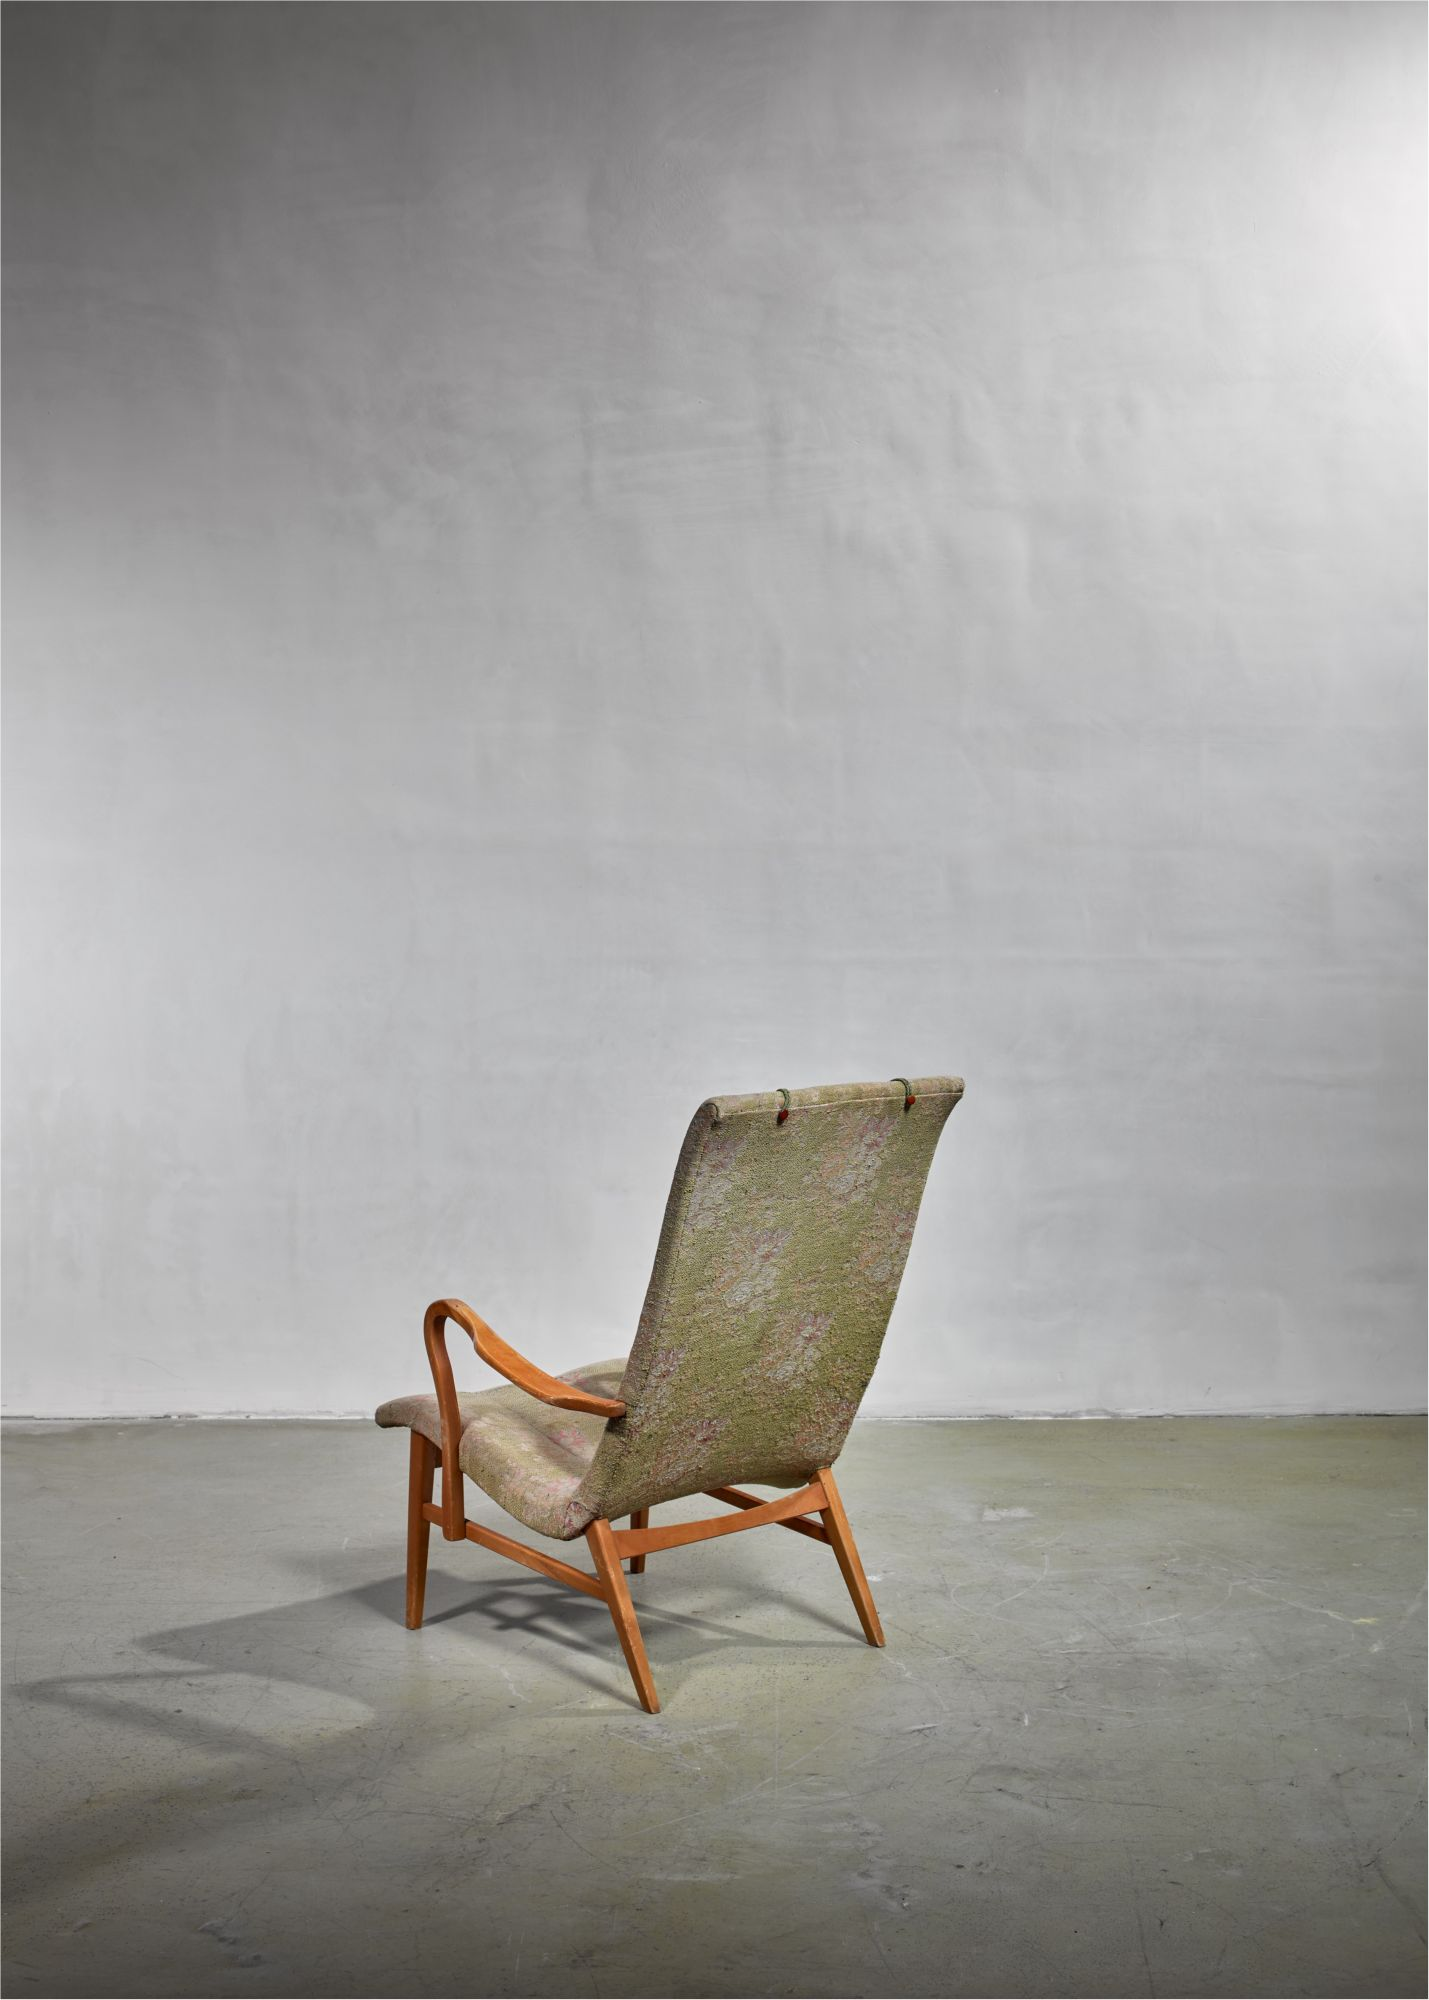 Terrific Carl Axel Acking Lounge Chair With Aged Floral Upholstery Squirreltailoven Fun Painted Chair Ideas Images Squirreltailovenorg